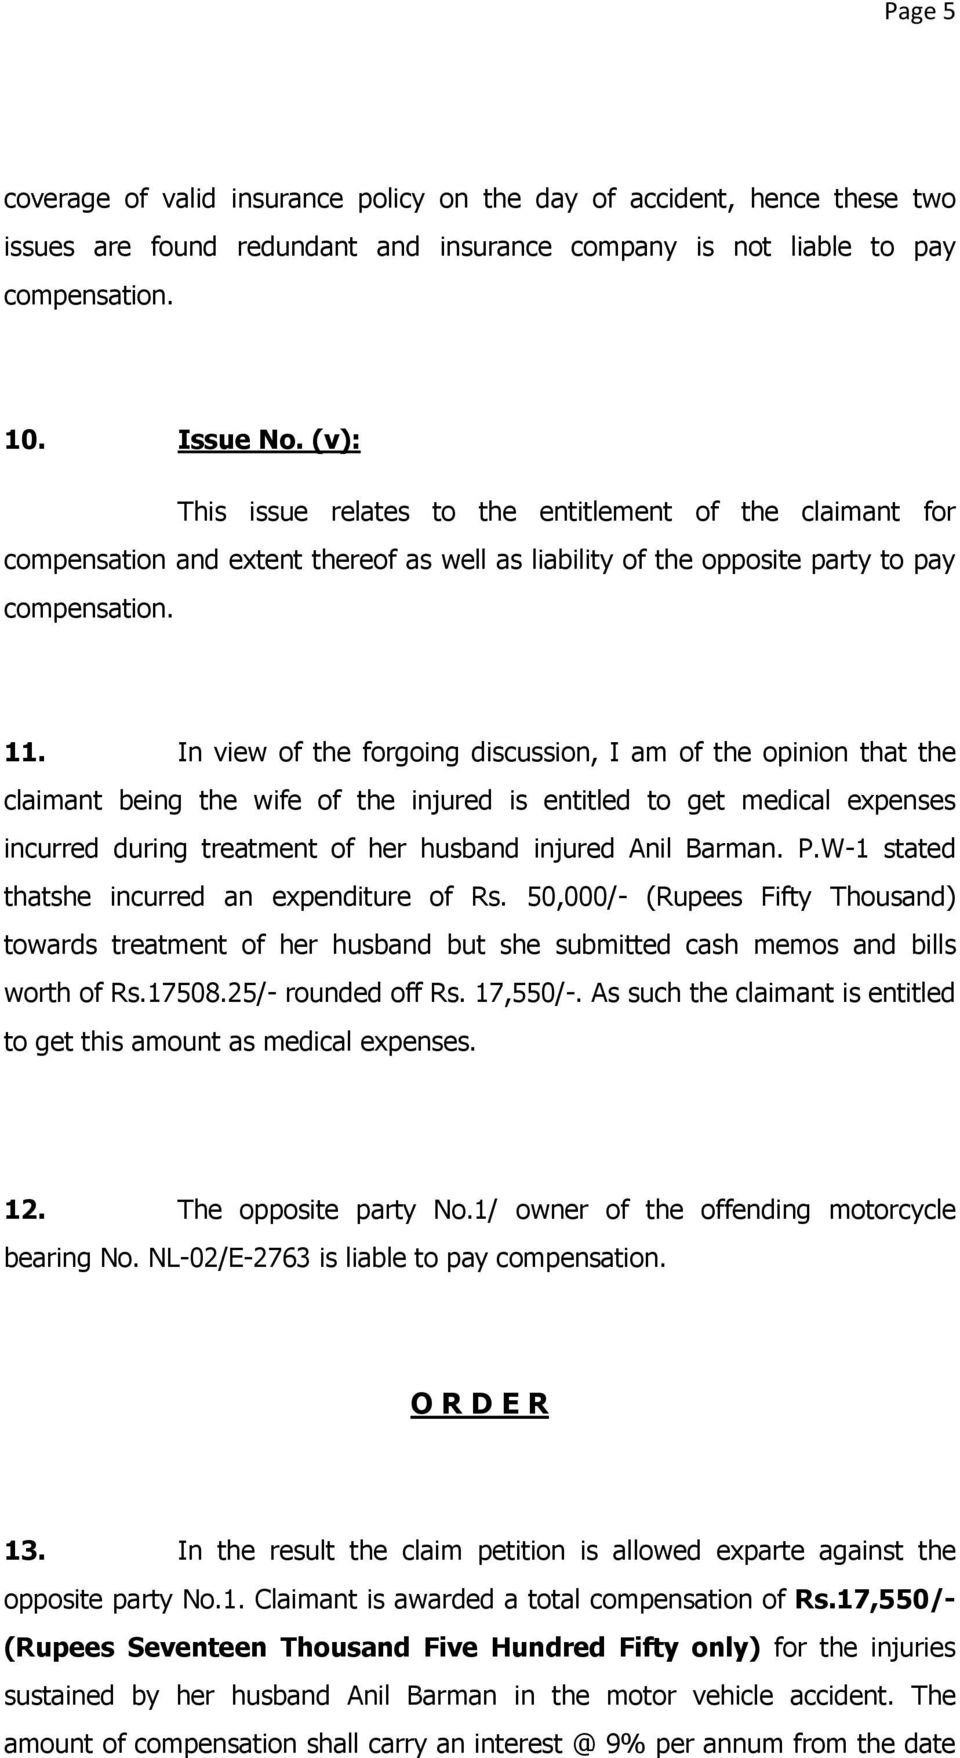 In view of the forgoing discussion, I am of the opinion that the claimant being the wife of the injured is entitled to get medical expenses incurred during treatment of her husband injured Anil